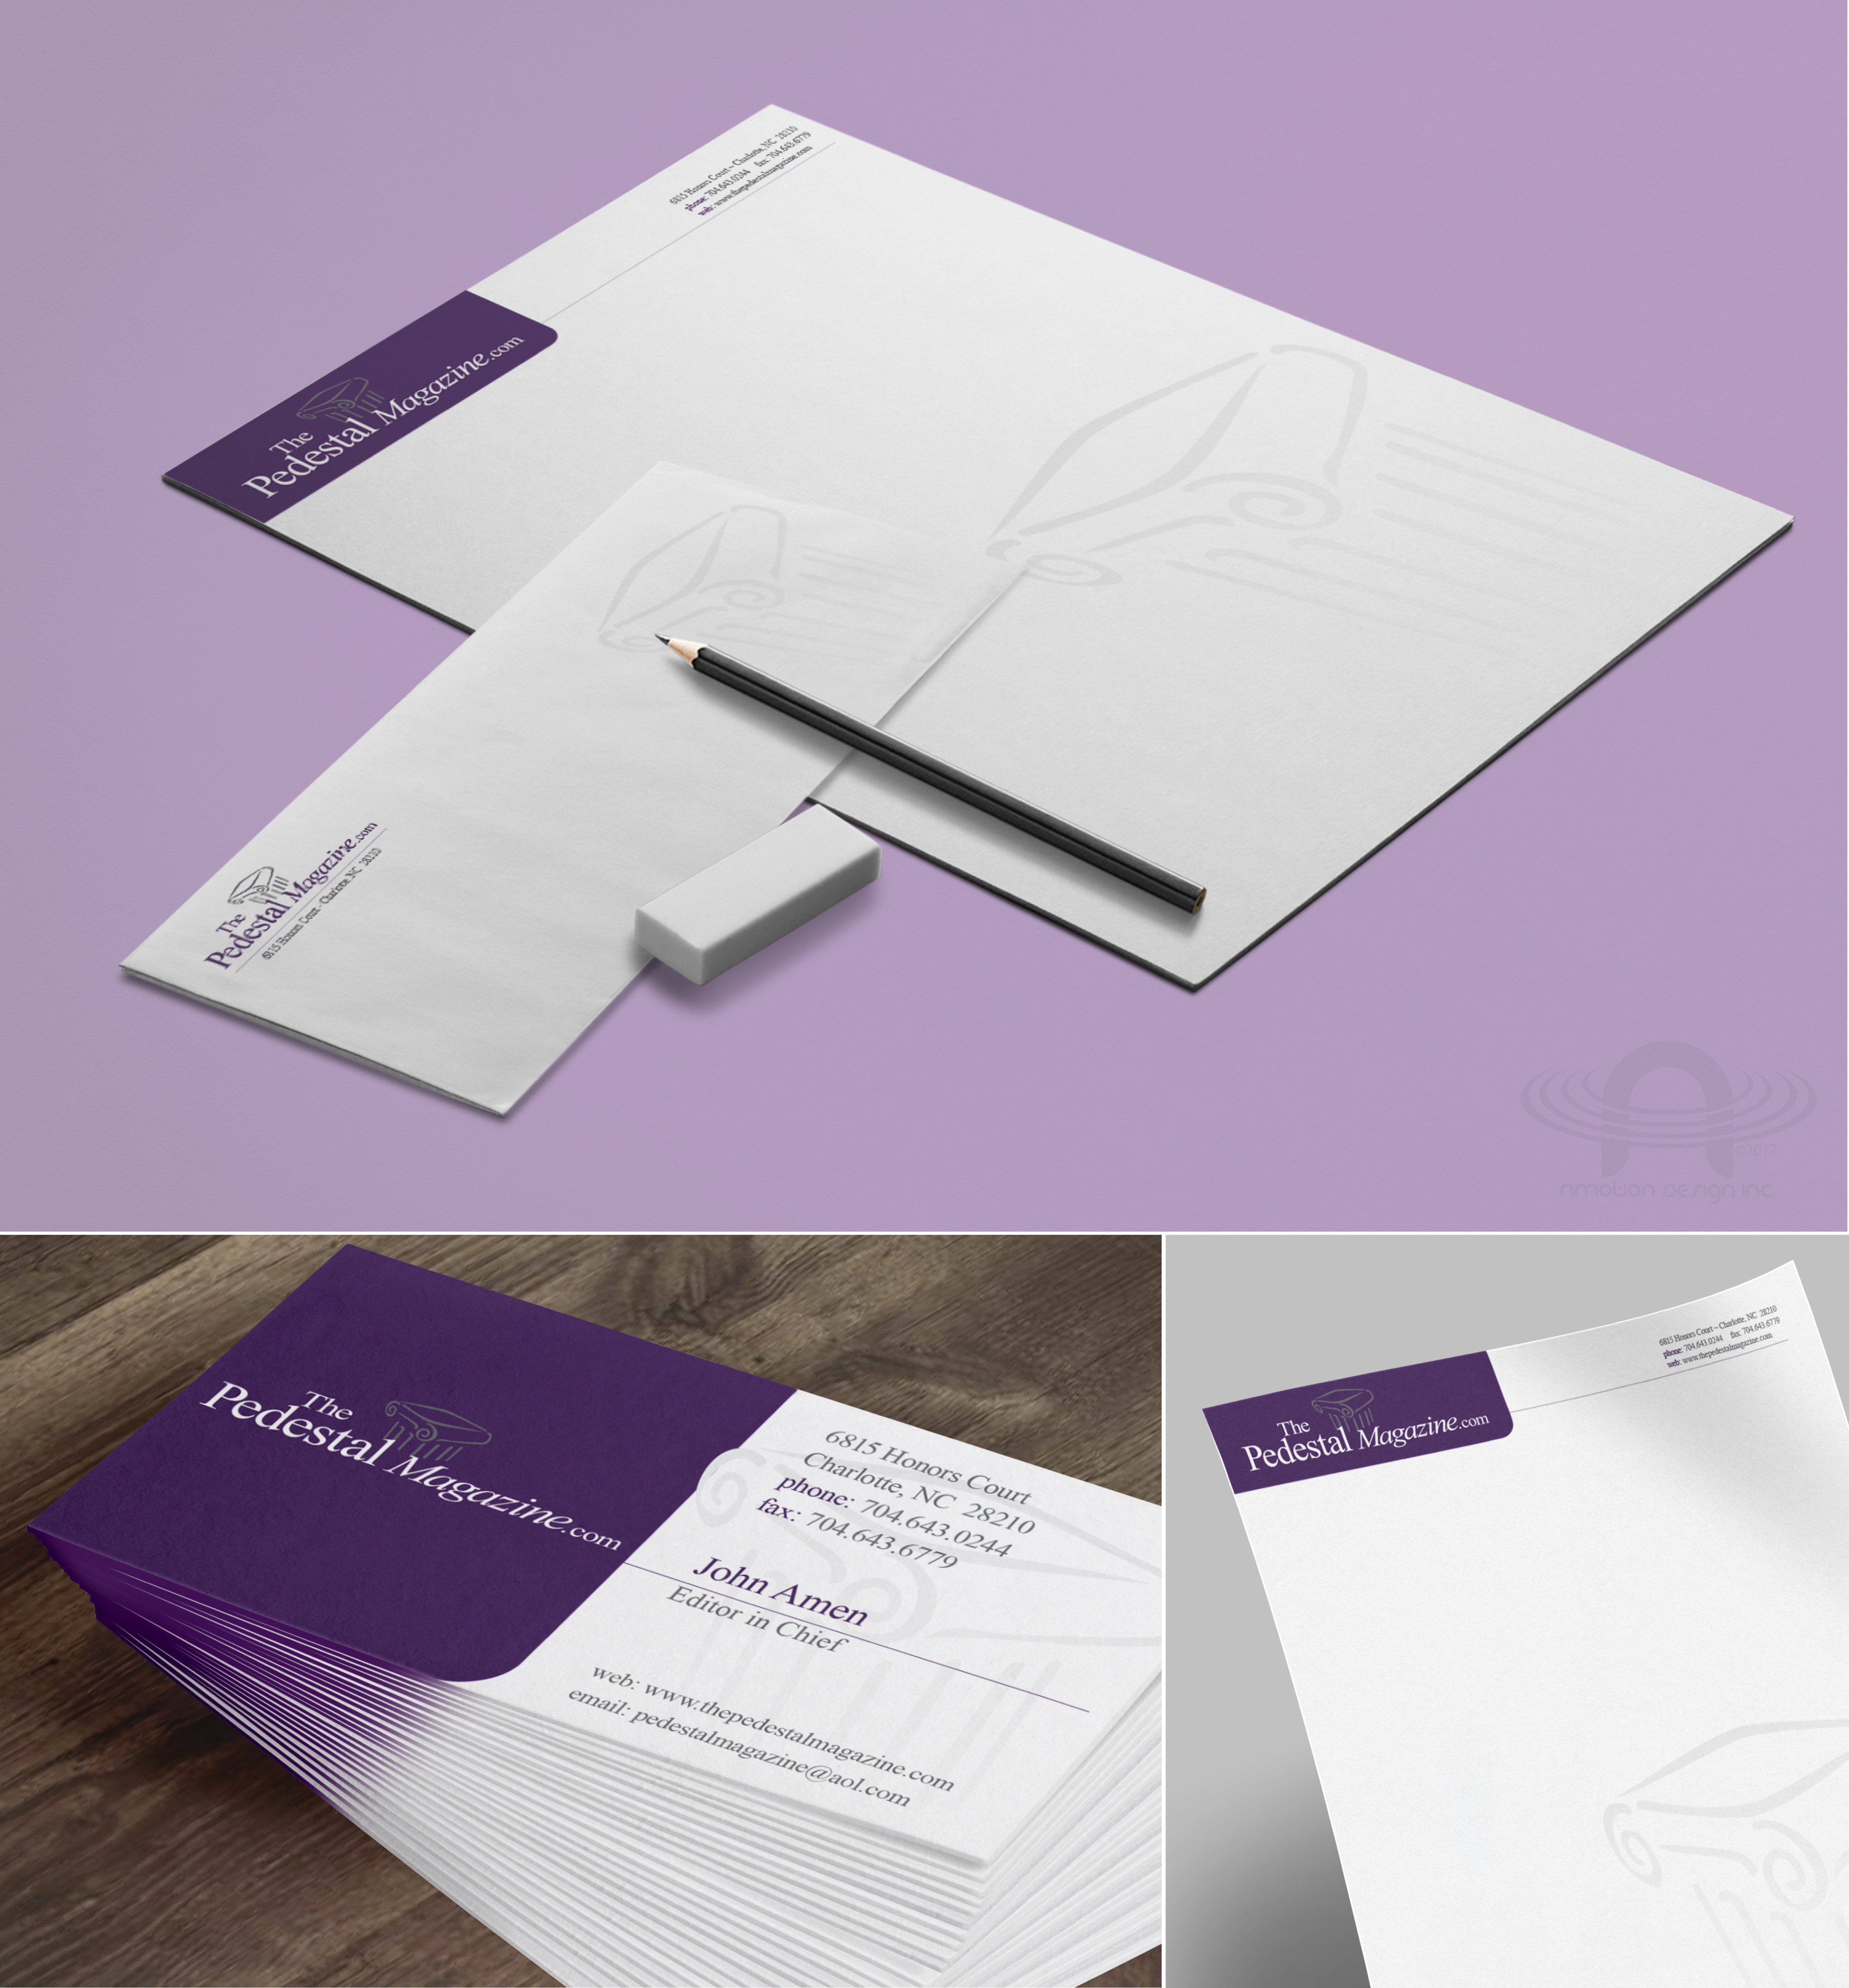 PEDESTAL MAGAZINE FULL BRANDING AND SALES PACKAGE